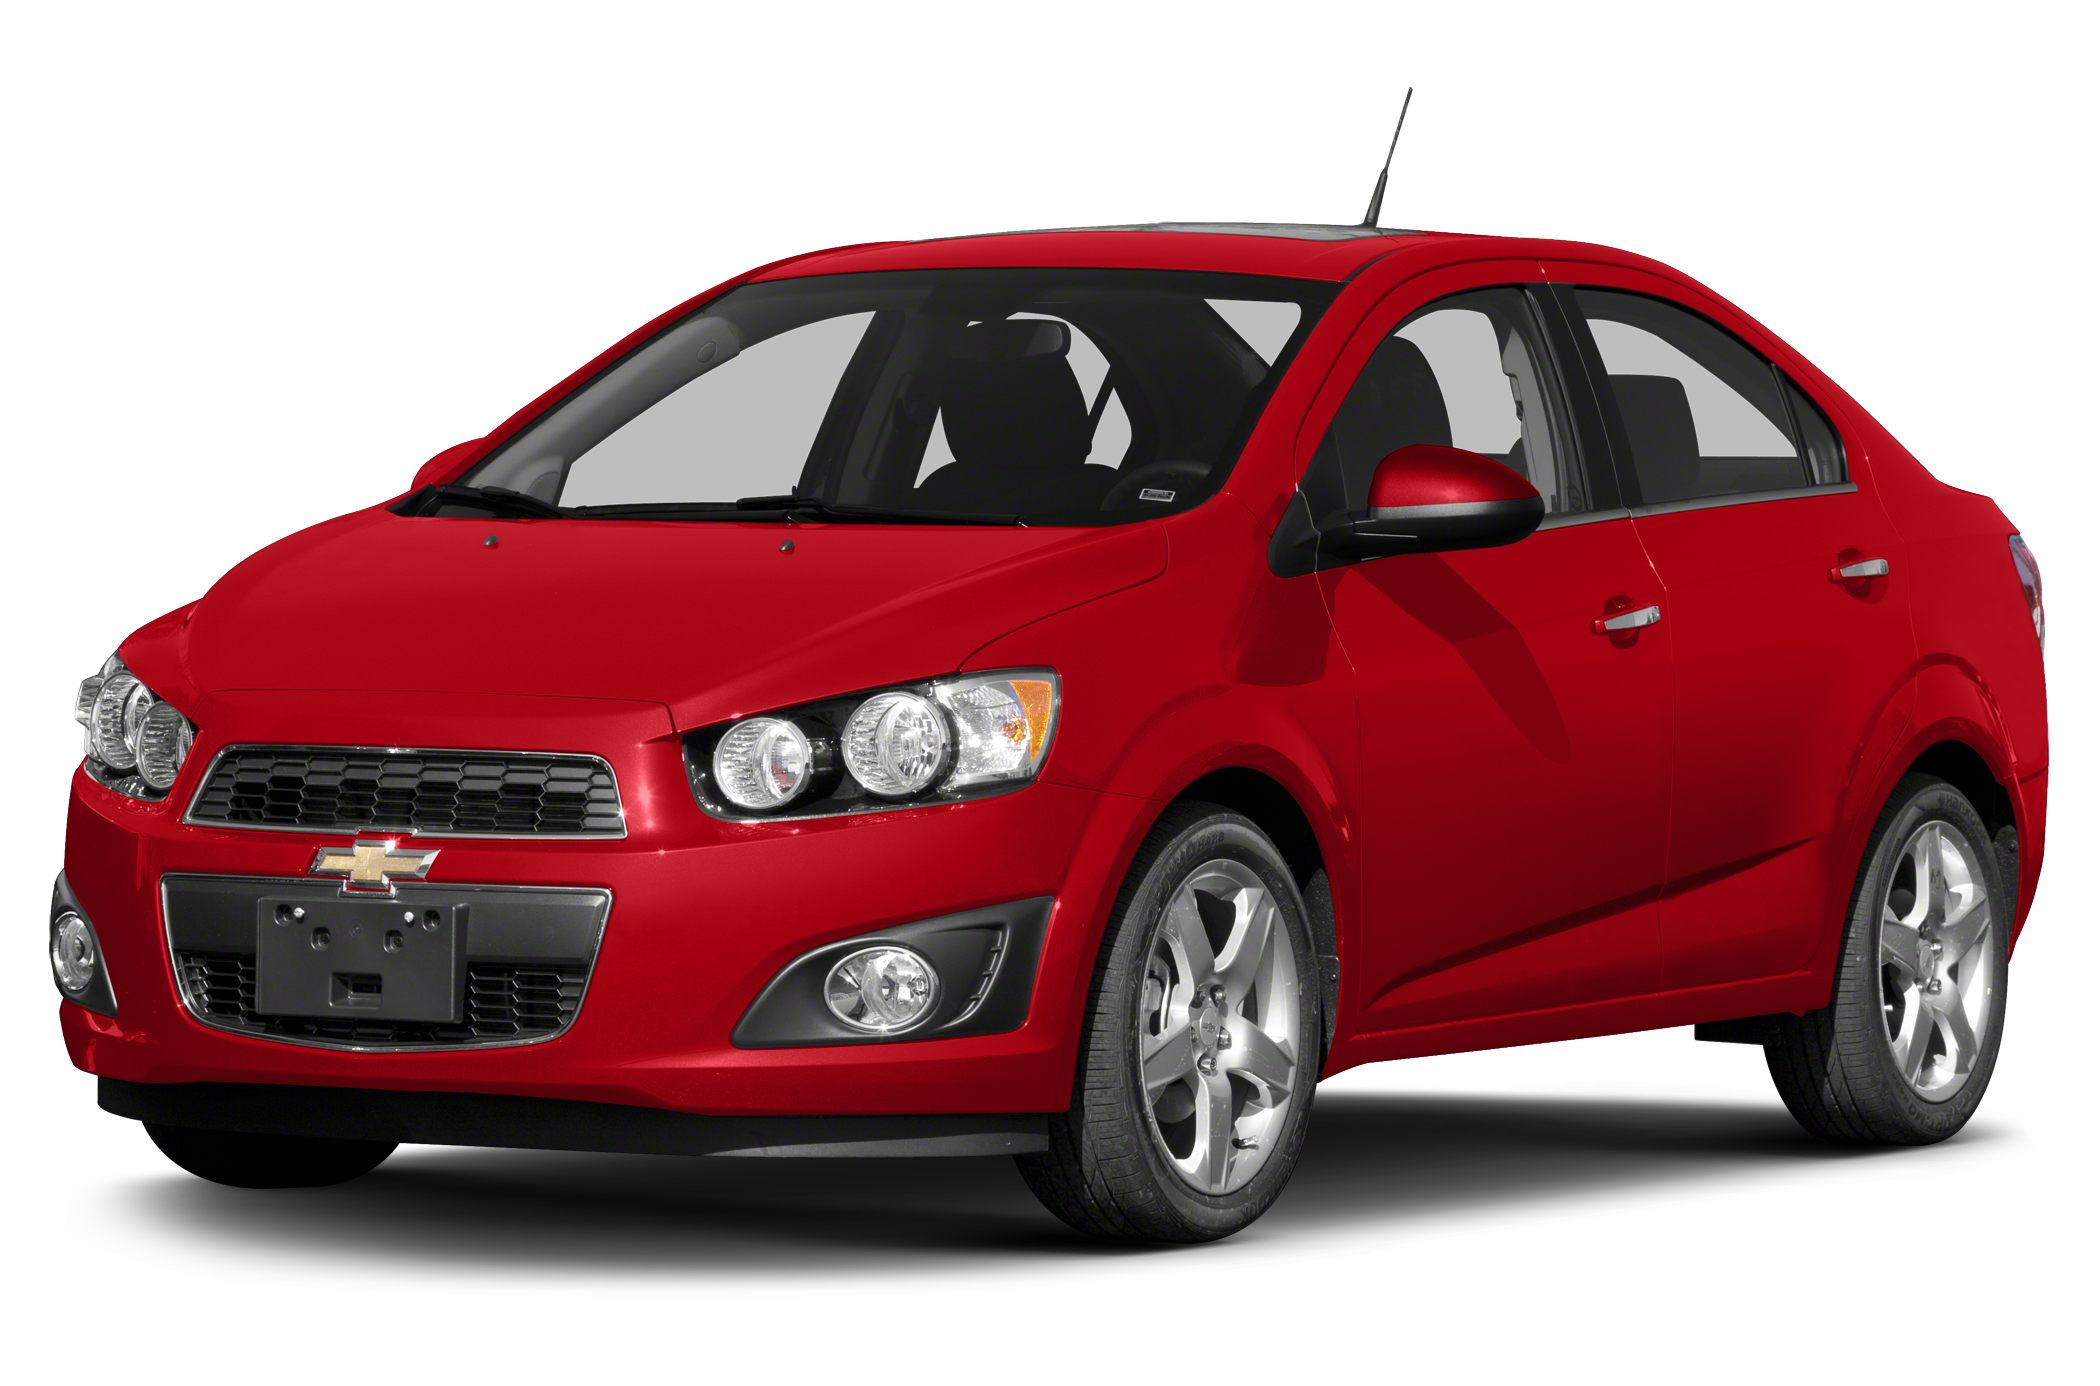 2014 Chevrolet Sonic LT Sedan for sale in Angleton for $18,350 with 0 miles.